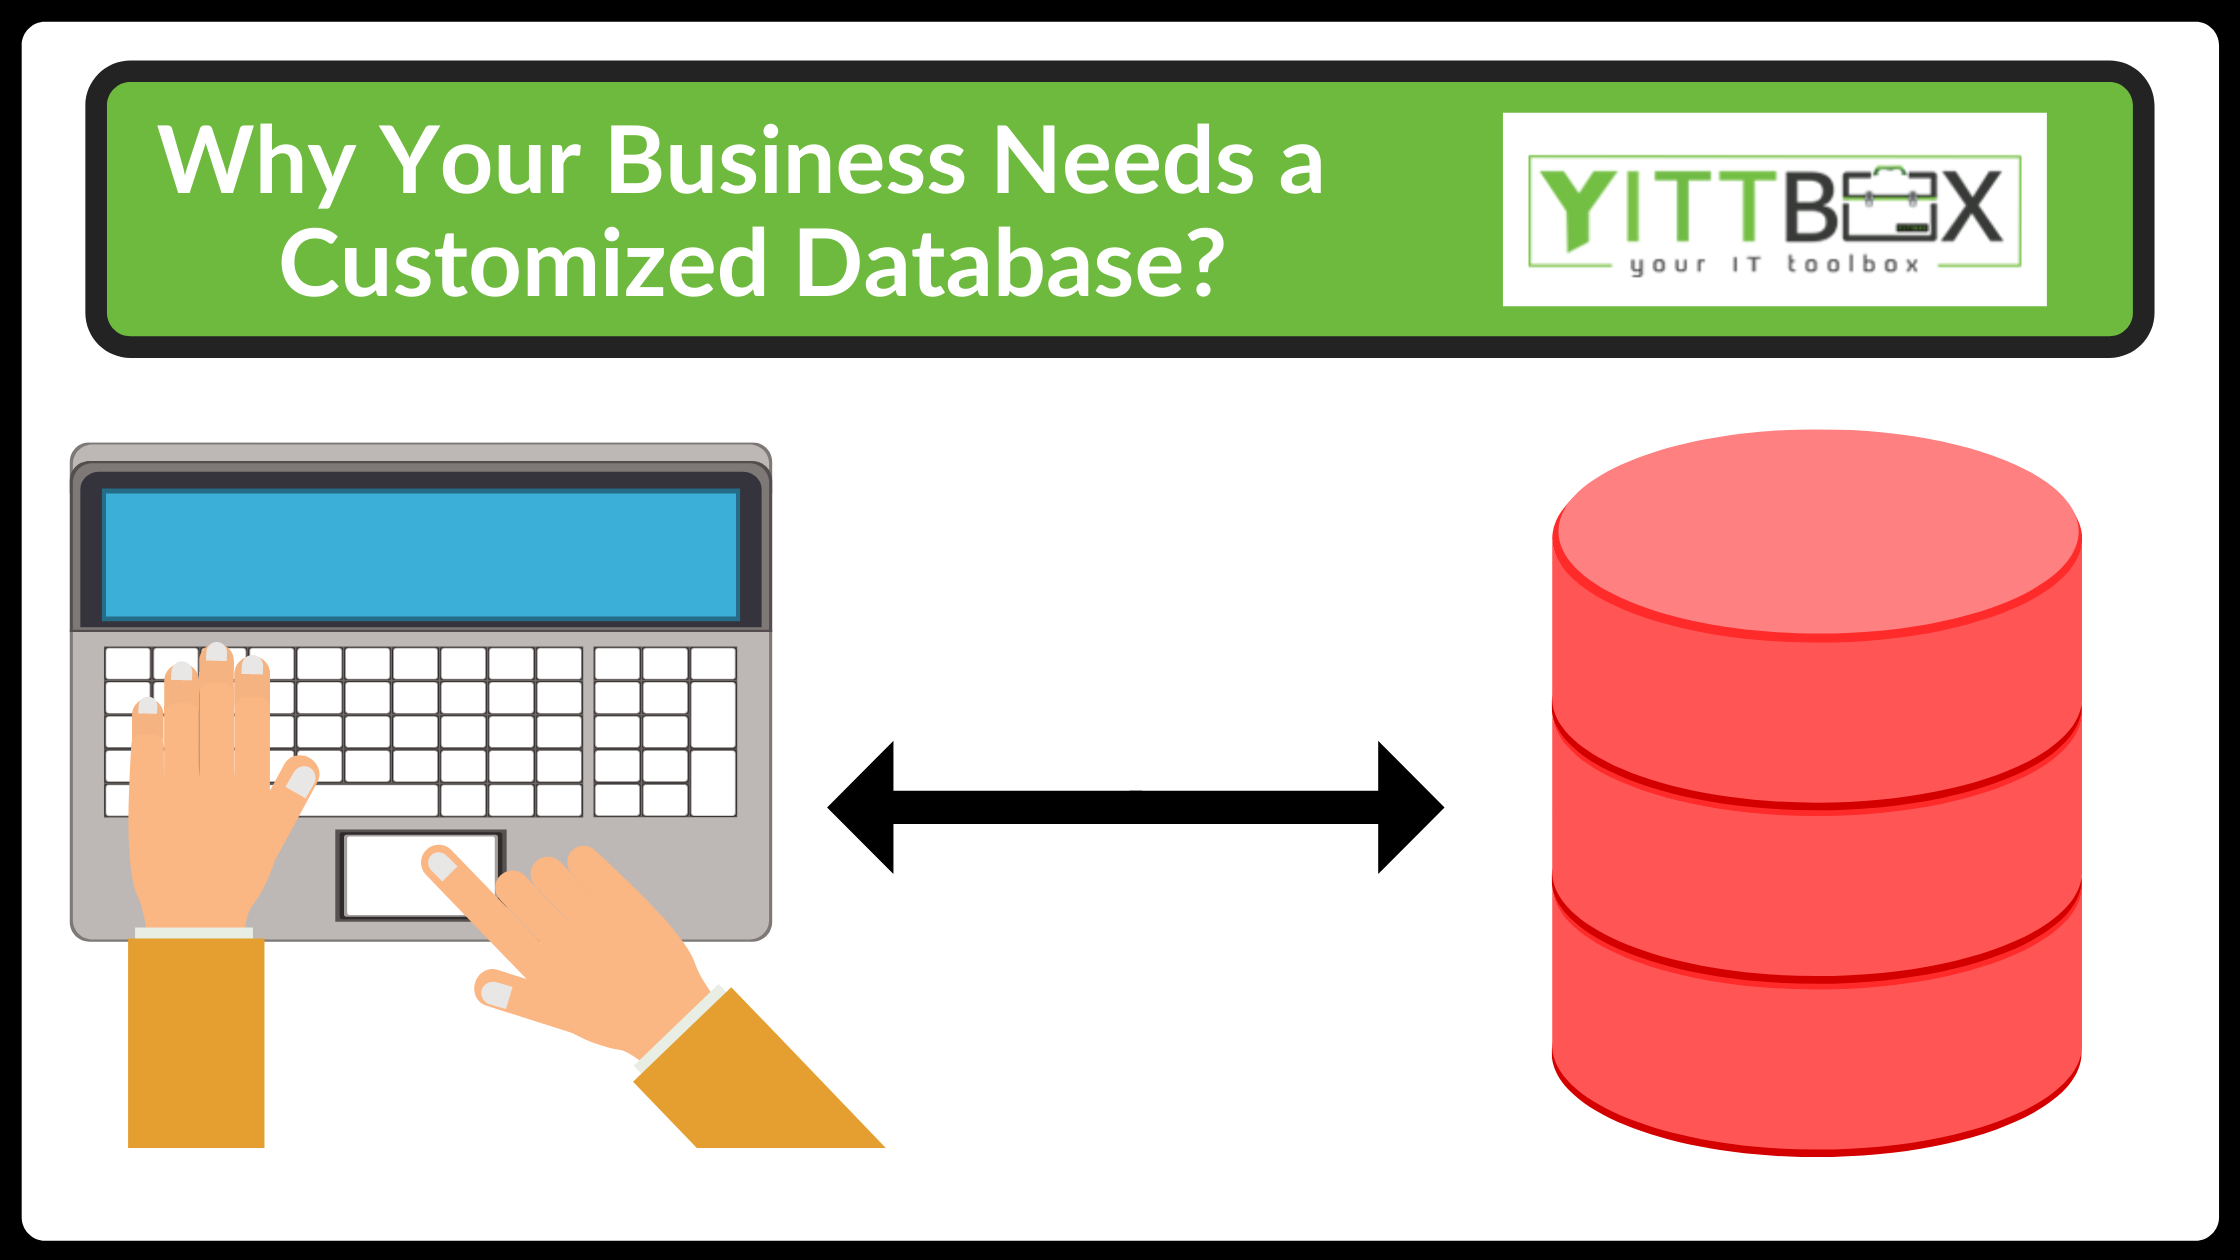 Why Your Business Needs a Customized Database?